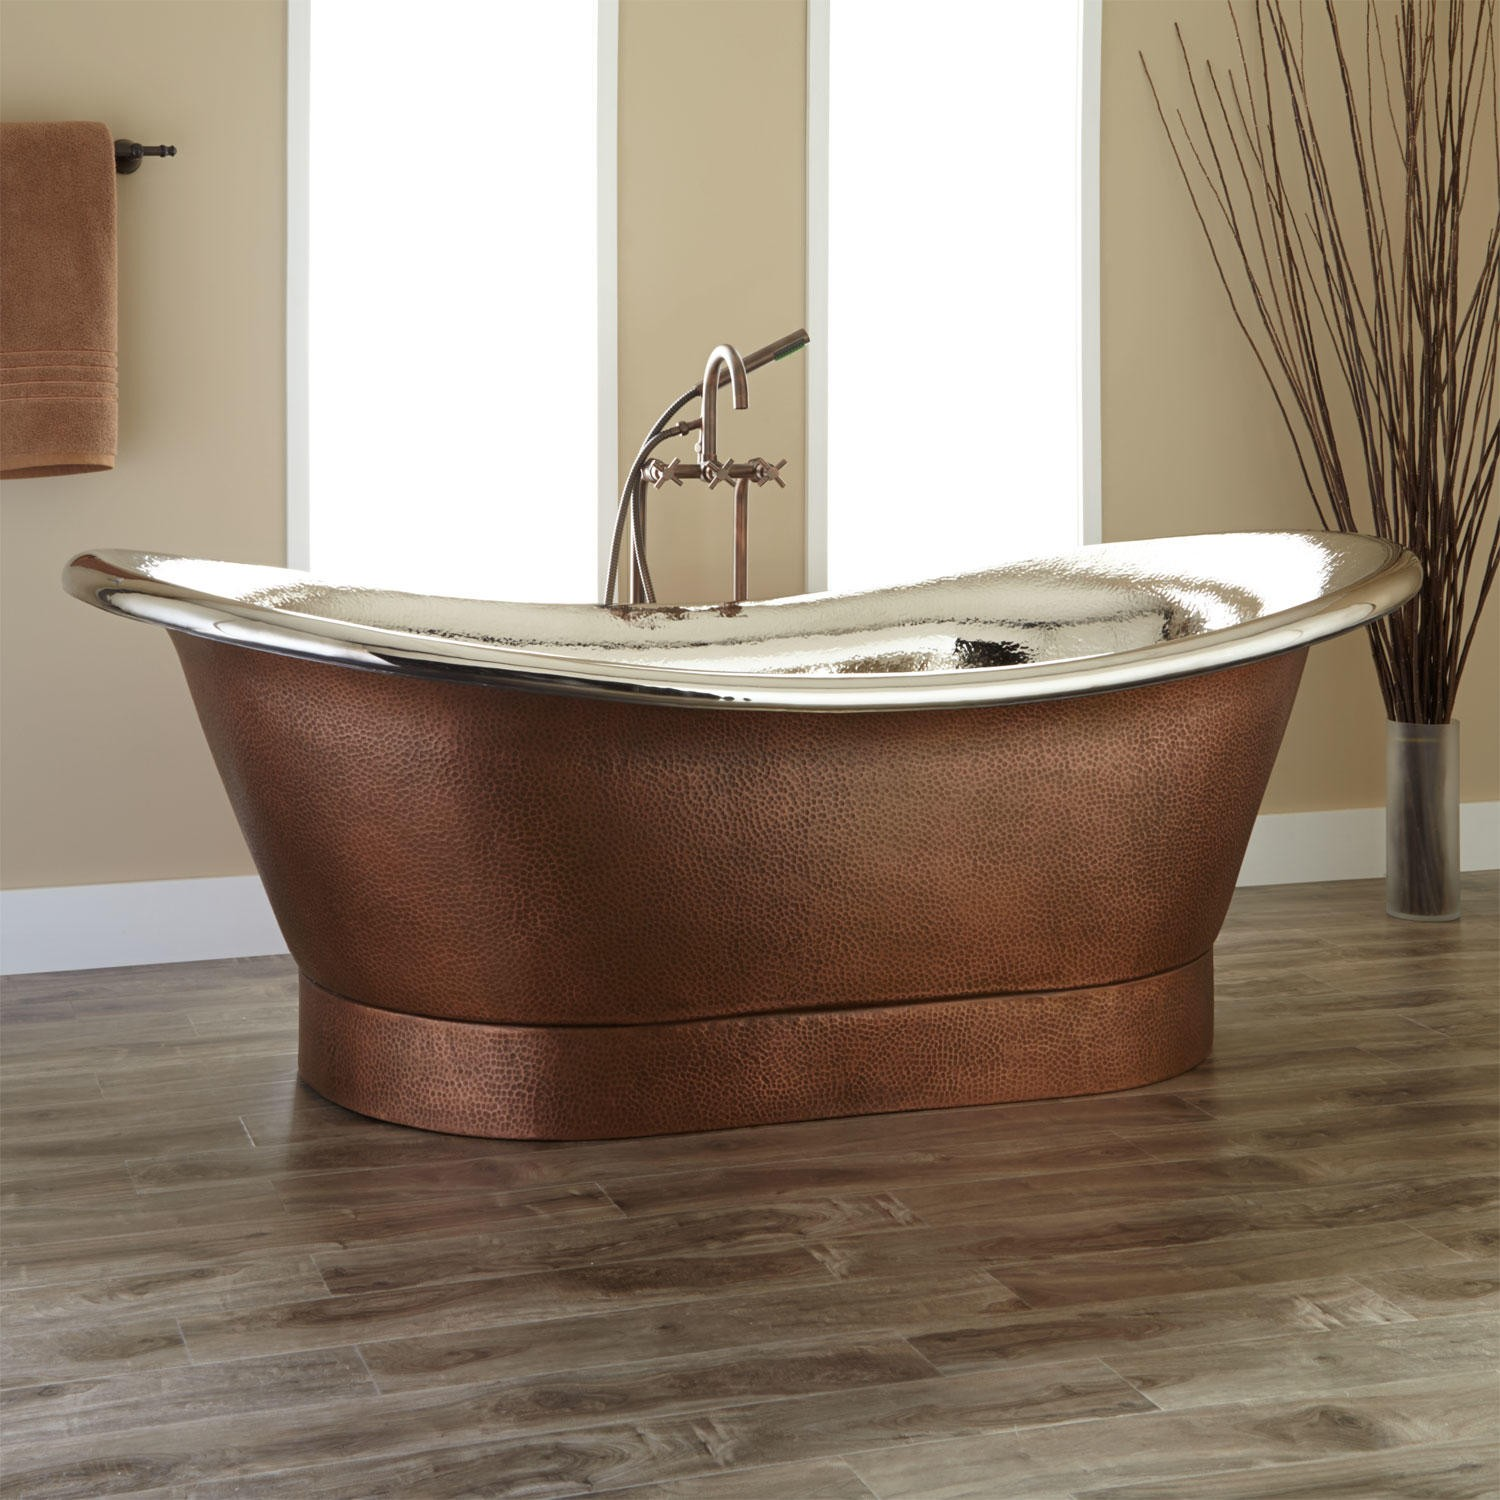 Copper Bathtubs: Turning Your Bathroom Into An Antique